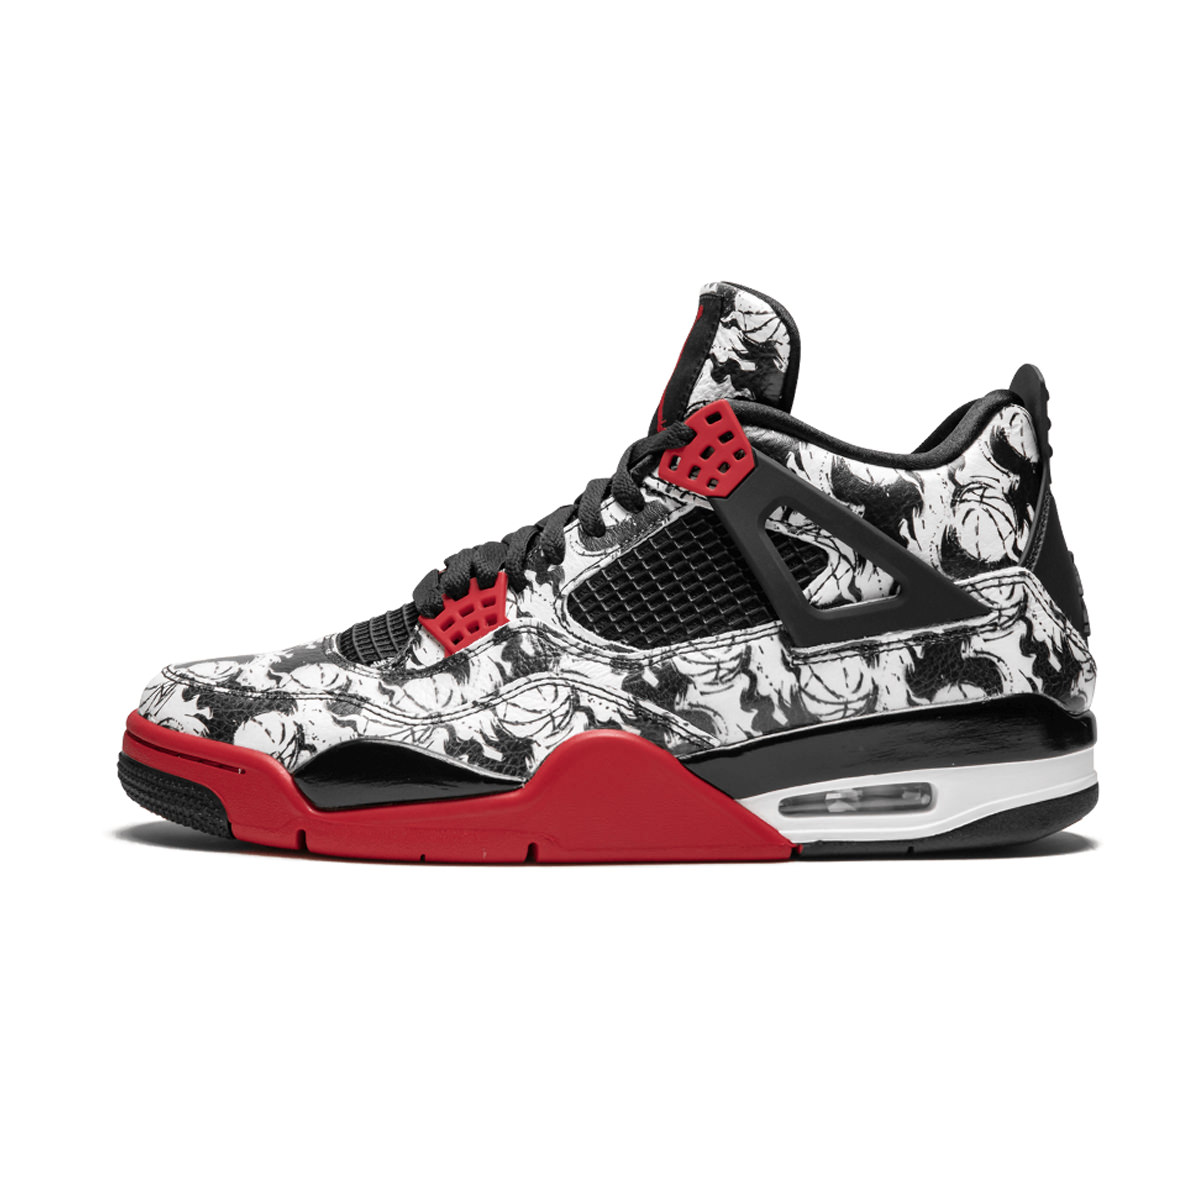 promo code 6ddce 28711 Air Jordan 4 Retro Tattoo